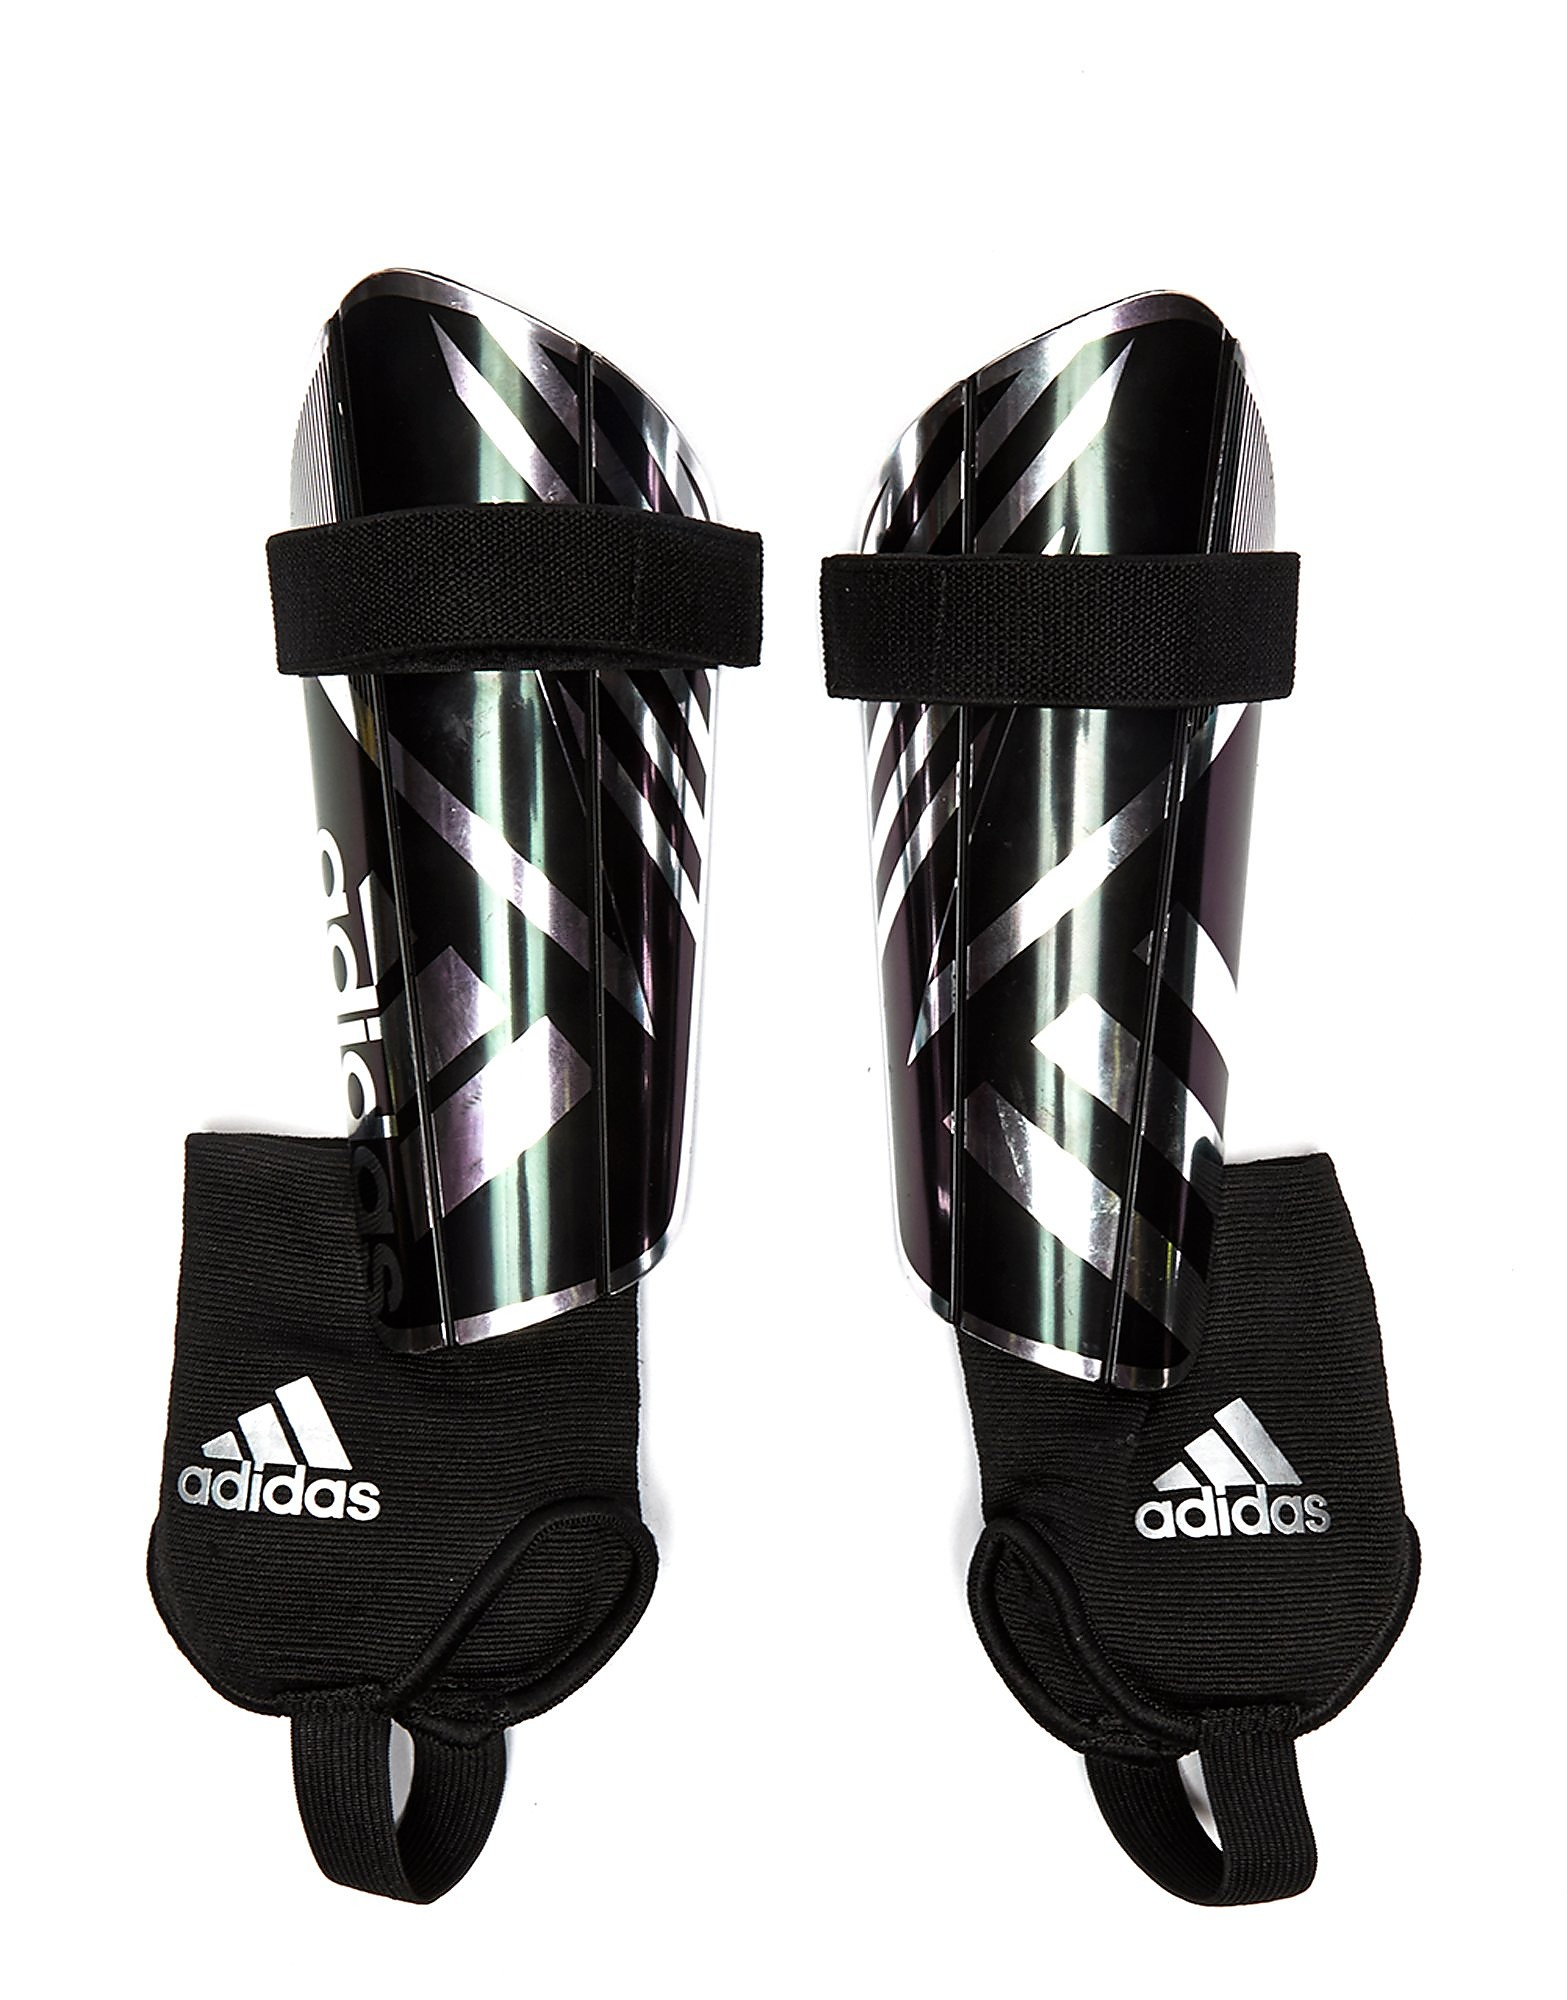 adidas Ghost Reflex Shin Guards